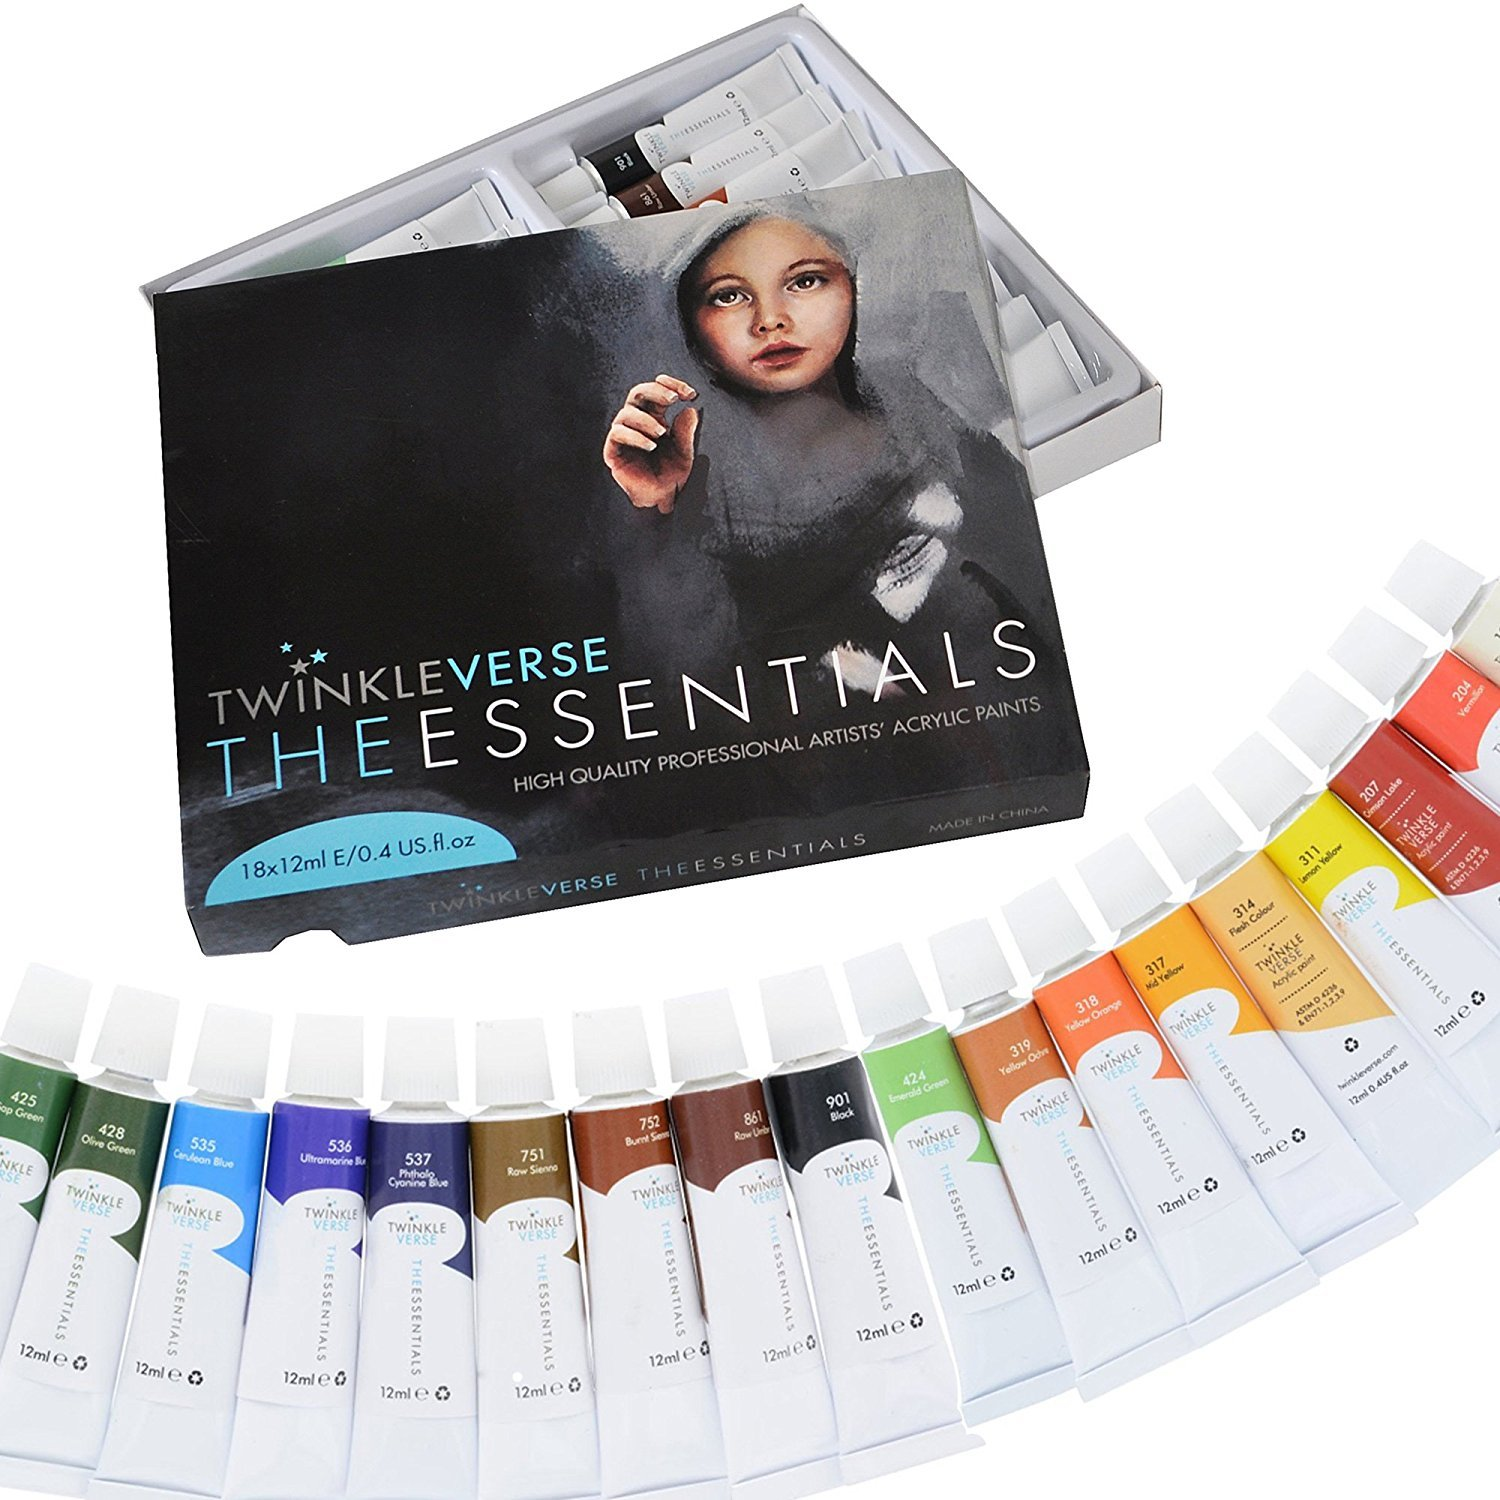 Acrylic Paint Set - 18 Artist Quality Acrylics - Canvas Paints, Arts and Craft Paint and Hobby Paint 820103132282 3445957